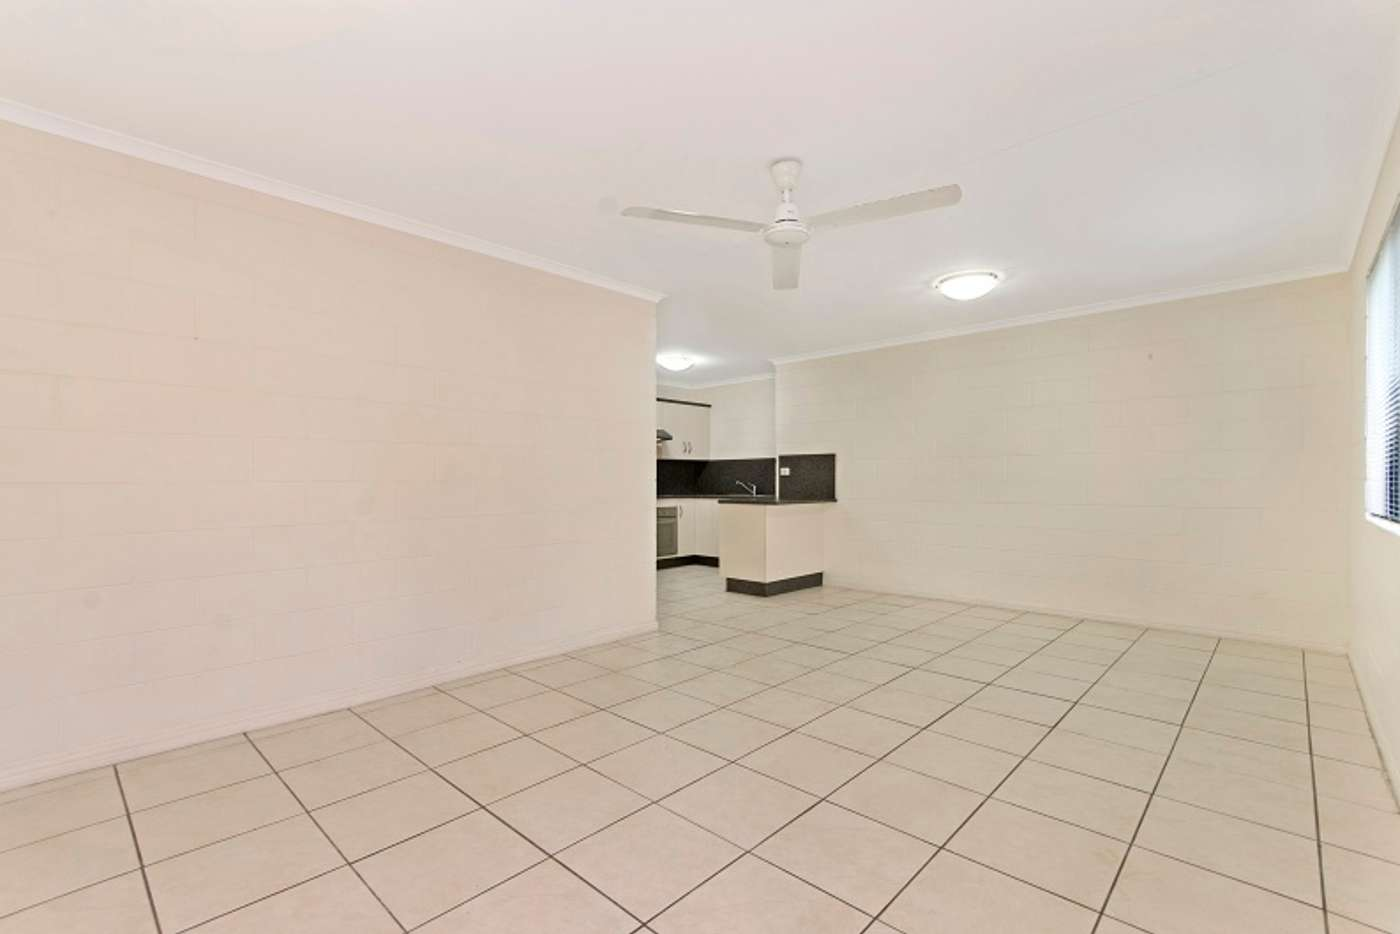 Fifth view of Homely unit listing, 1/7 Warburton Street, North Ward QLD 4810